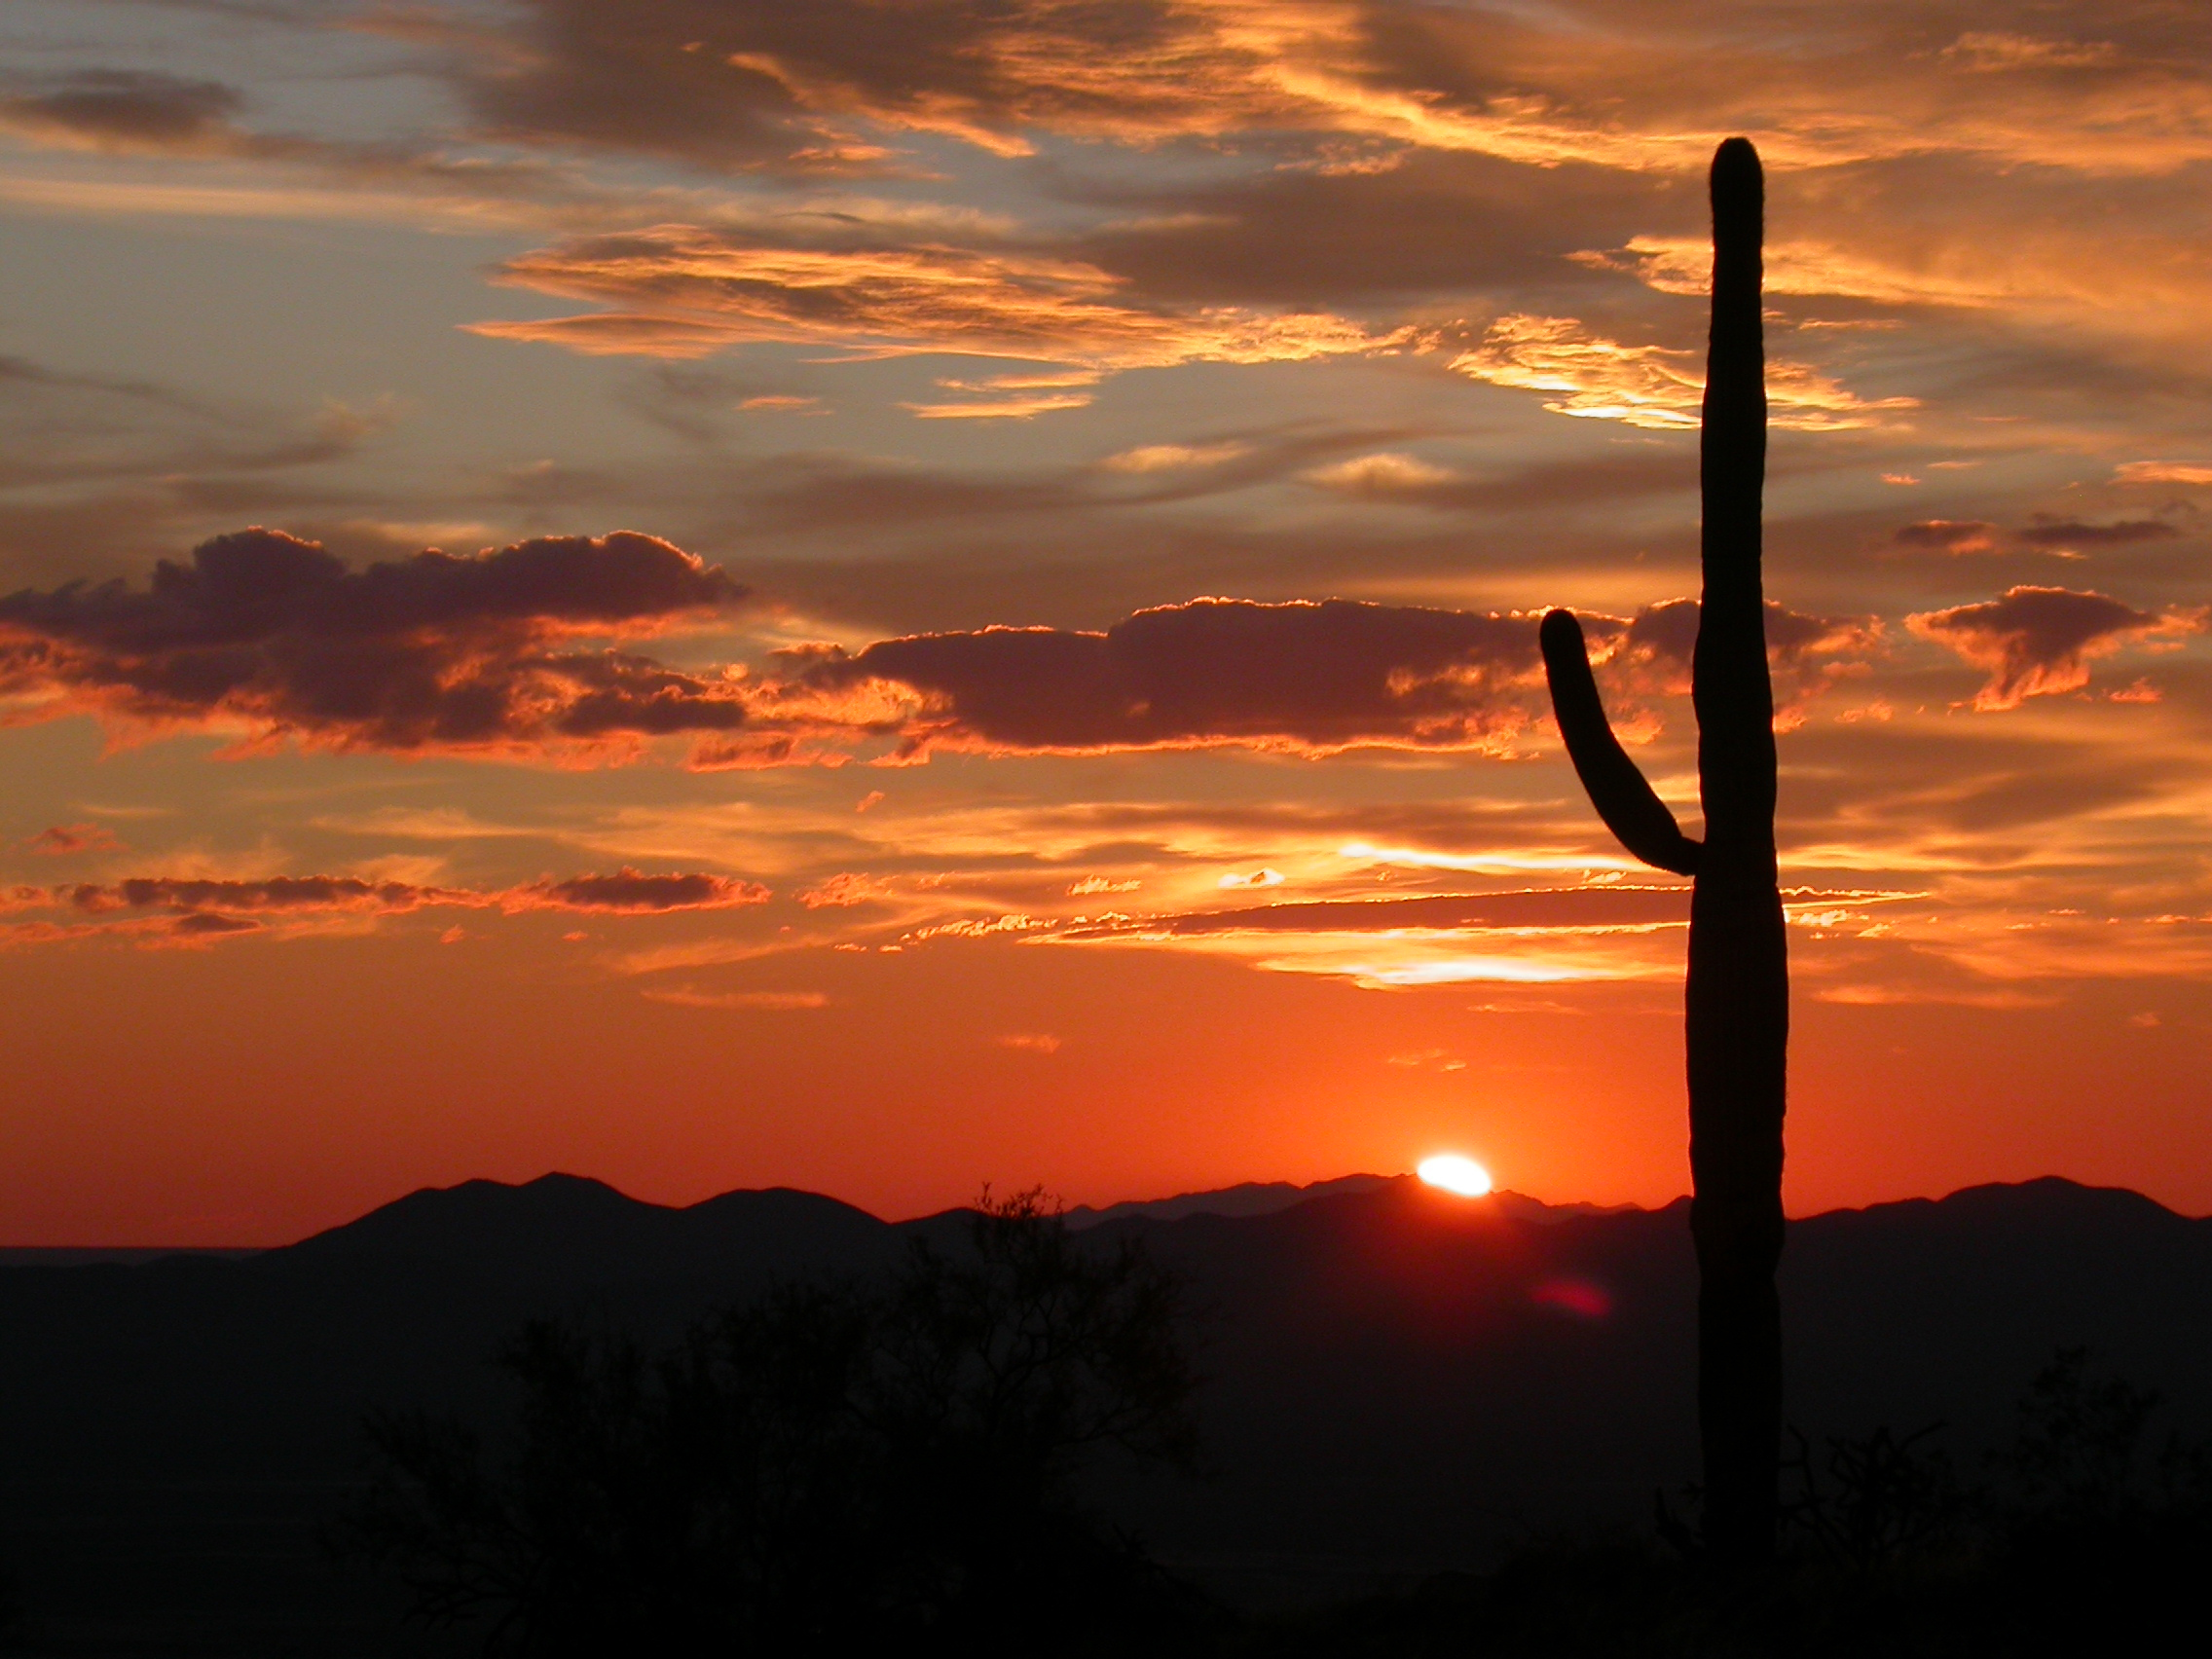 Sun City West Az >> File:Saguaro National Park Saguaro Sunset 9924.jpg - Wikimedia Commons